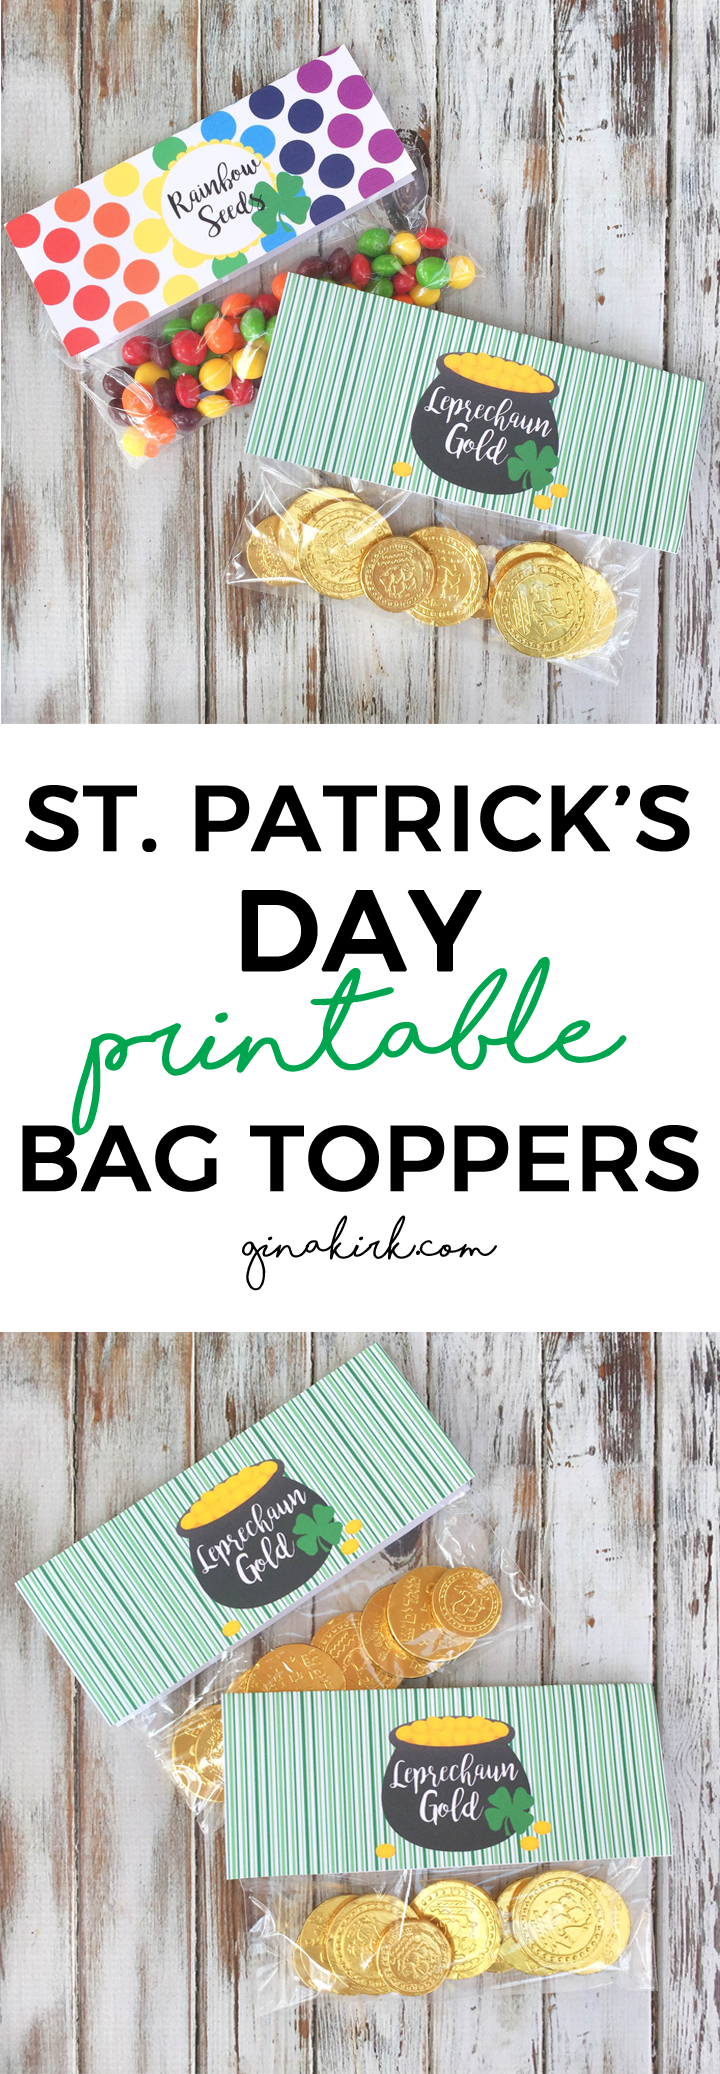 St. Patrick's Day printables | Bag toppers | Leprechaun printables | St. Patricks Day gift ideas | GinaKirk.com @ginaekirk